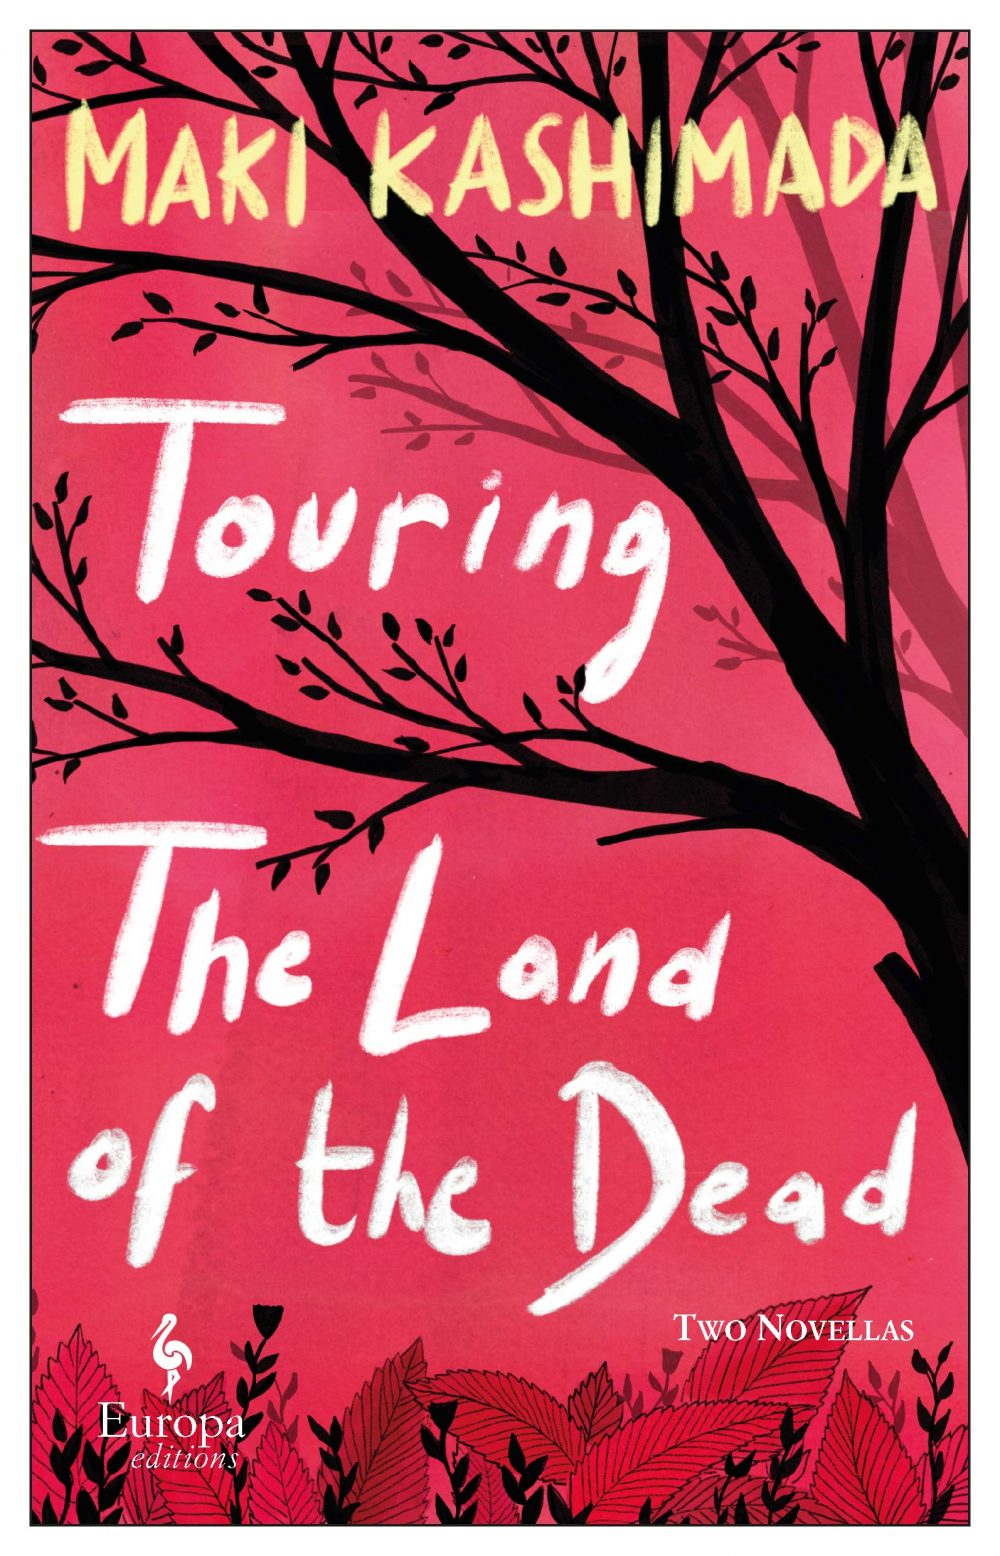 Touring the Land of the Dead (and Ninety-Nine Kisses), Maki Kashimada, Haydn Trowell (trans) (Europa Edition, April 2021)